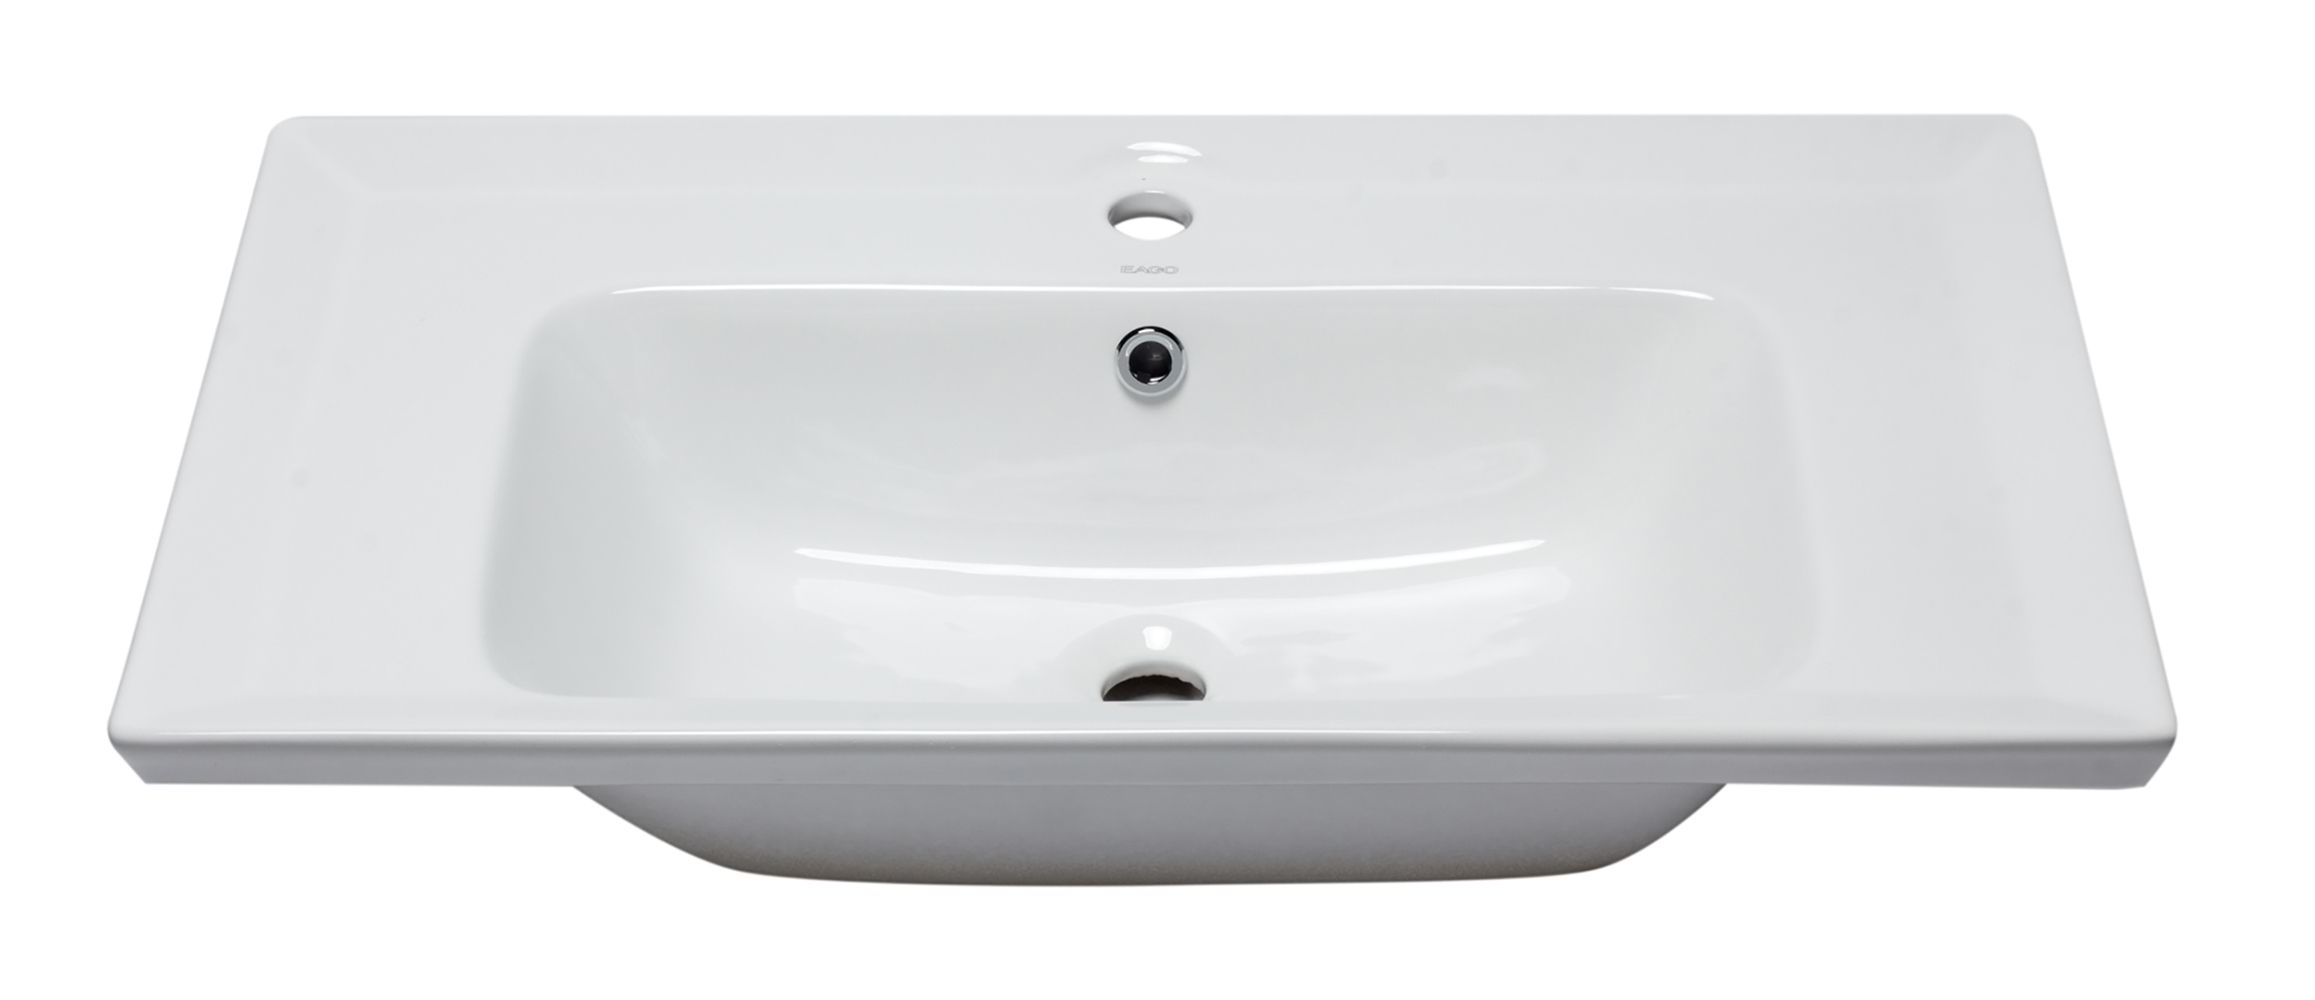 "EAGO BH003 White Ceramic 32""x19"" Rectangular Drop In Sink"